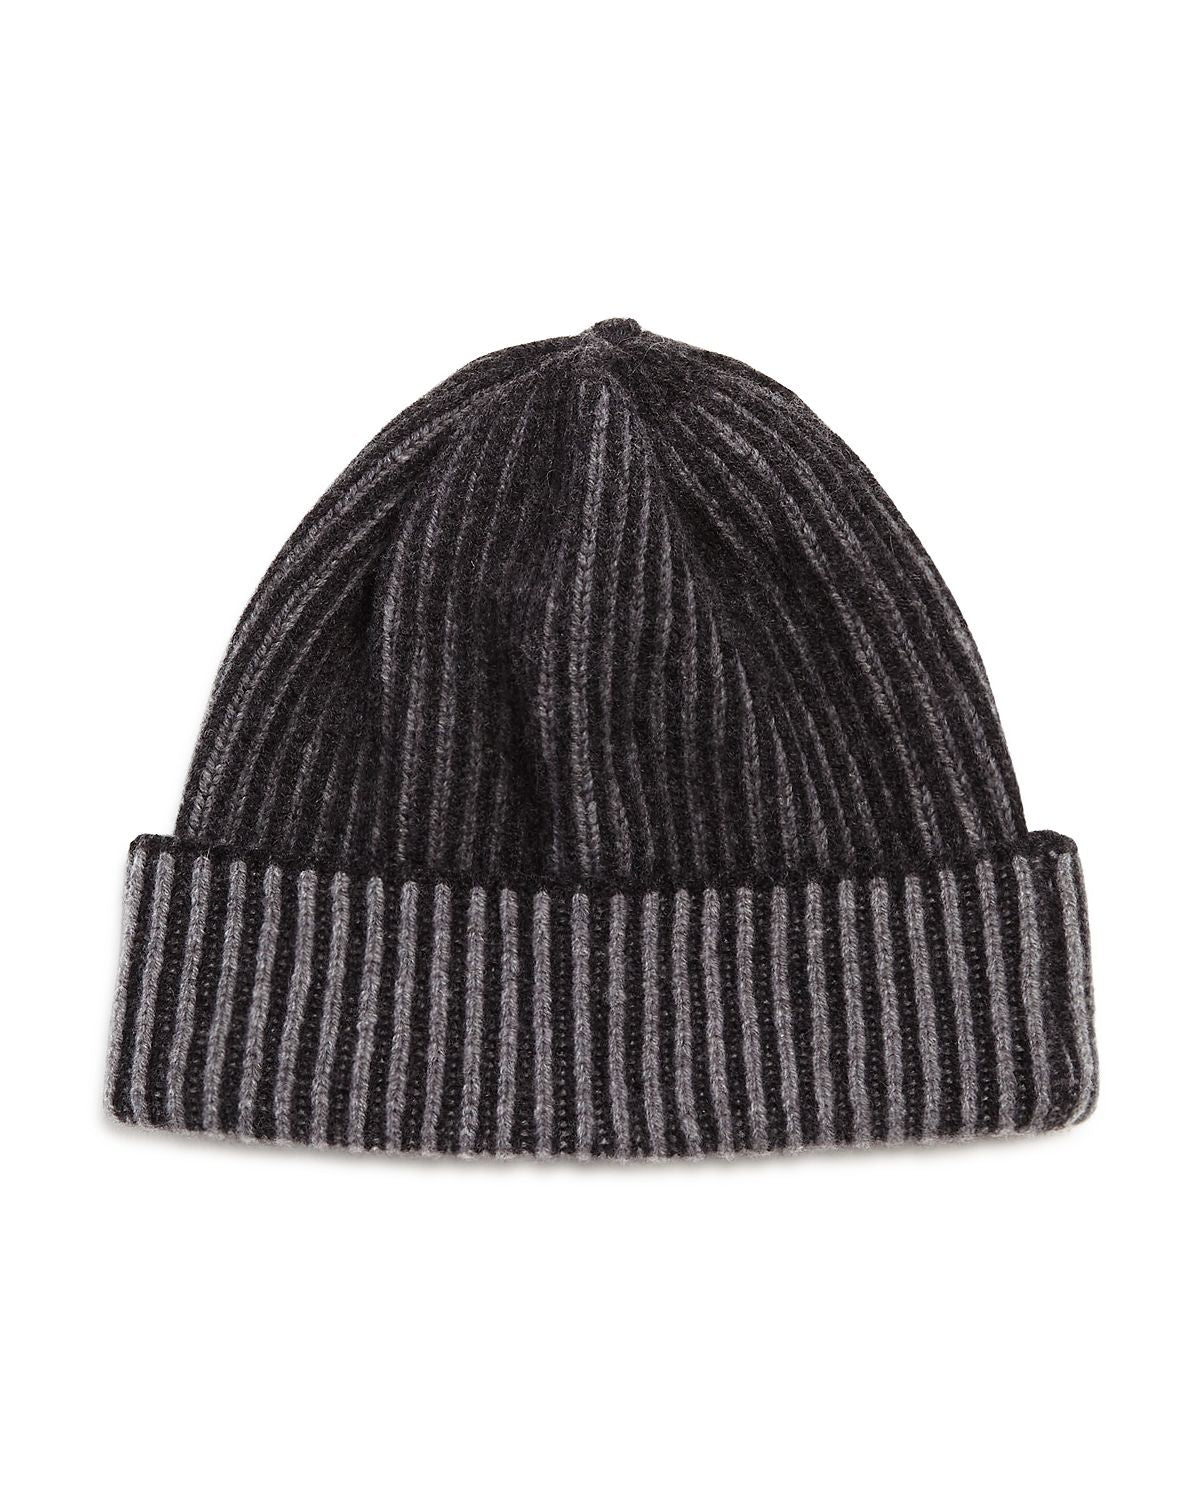 The Men's Store Ribbed Knit Hat Charcoal